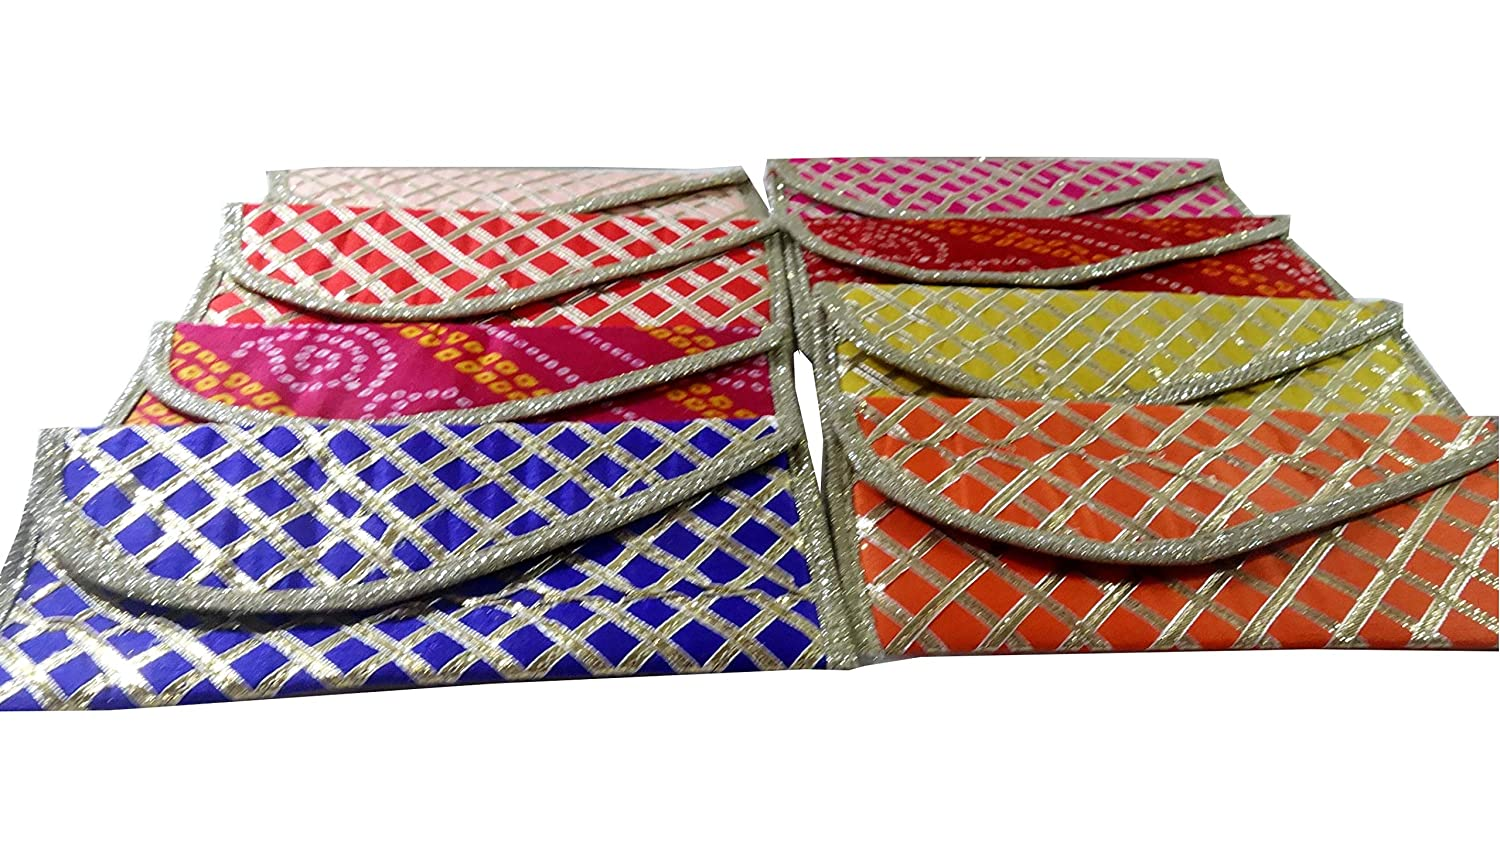 - Indian Wholesale 200 pc lot Bulk Mandala Hand Bag Ethnic Clutches Purse Shoulder for Ladies by Panchal Creation-08